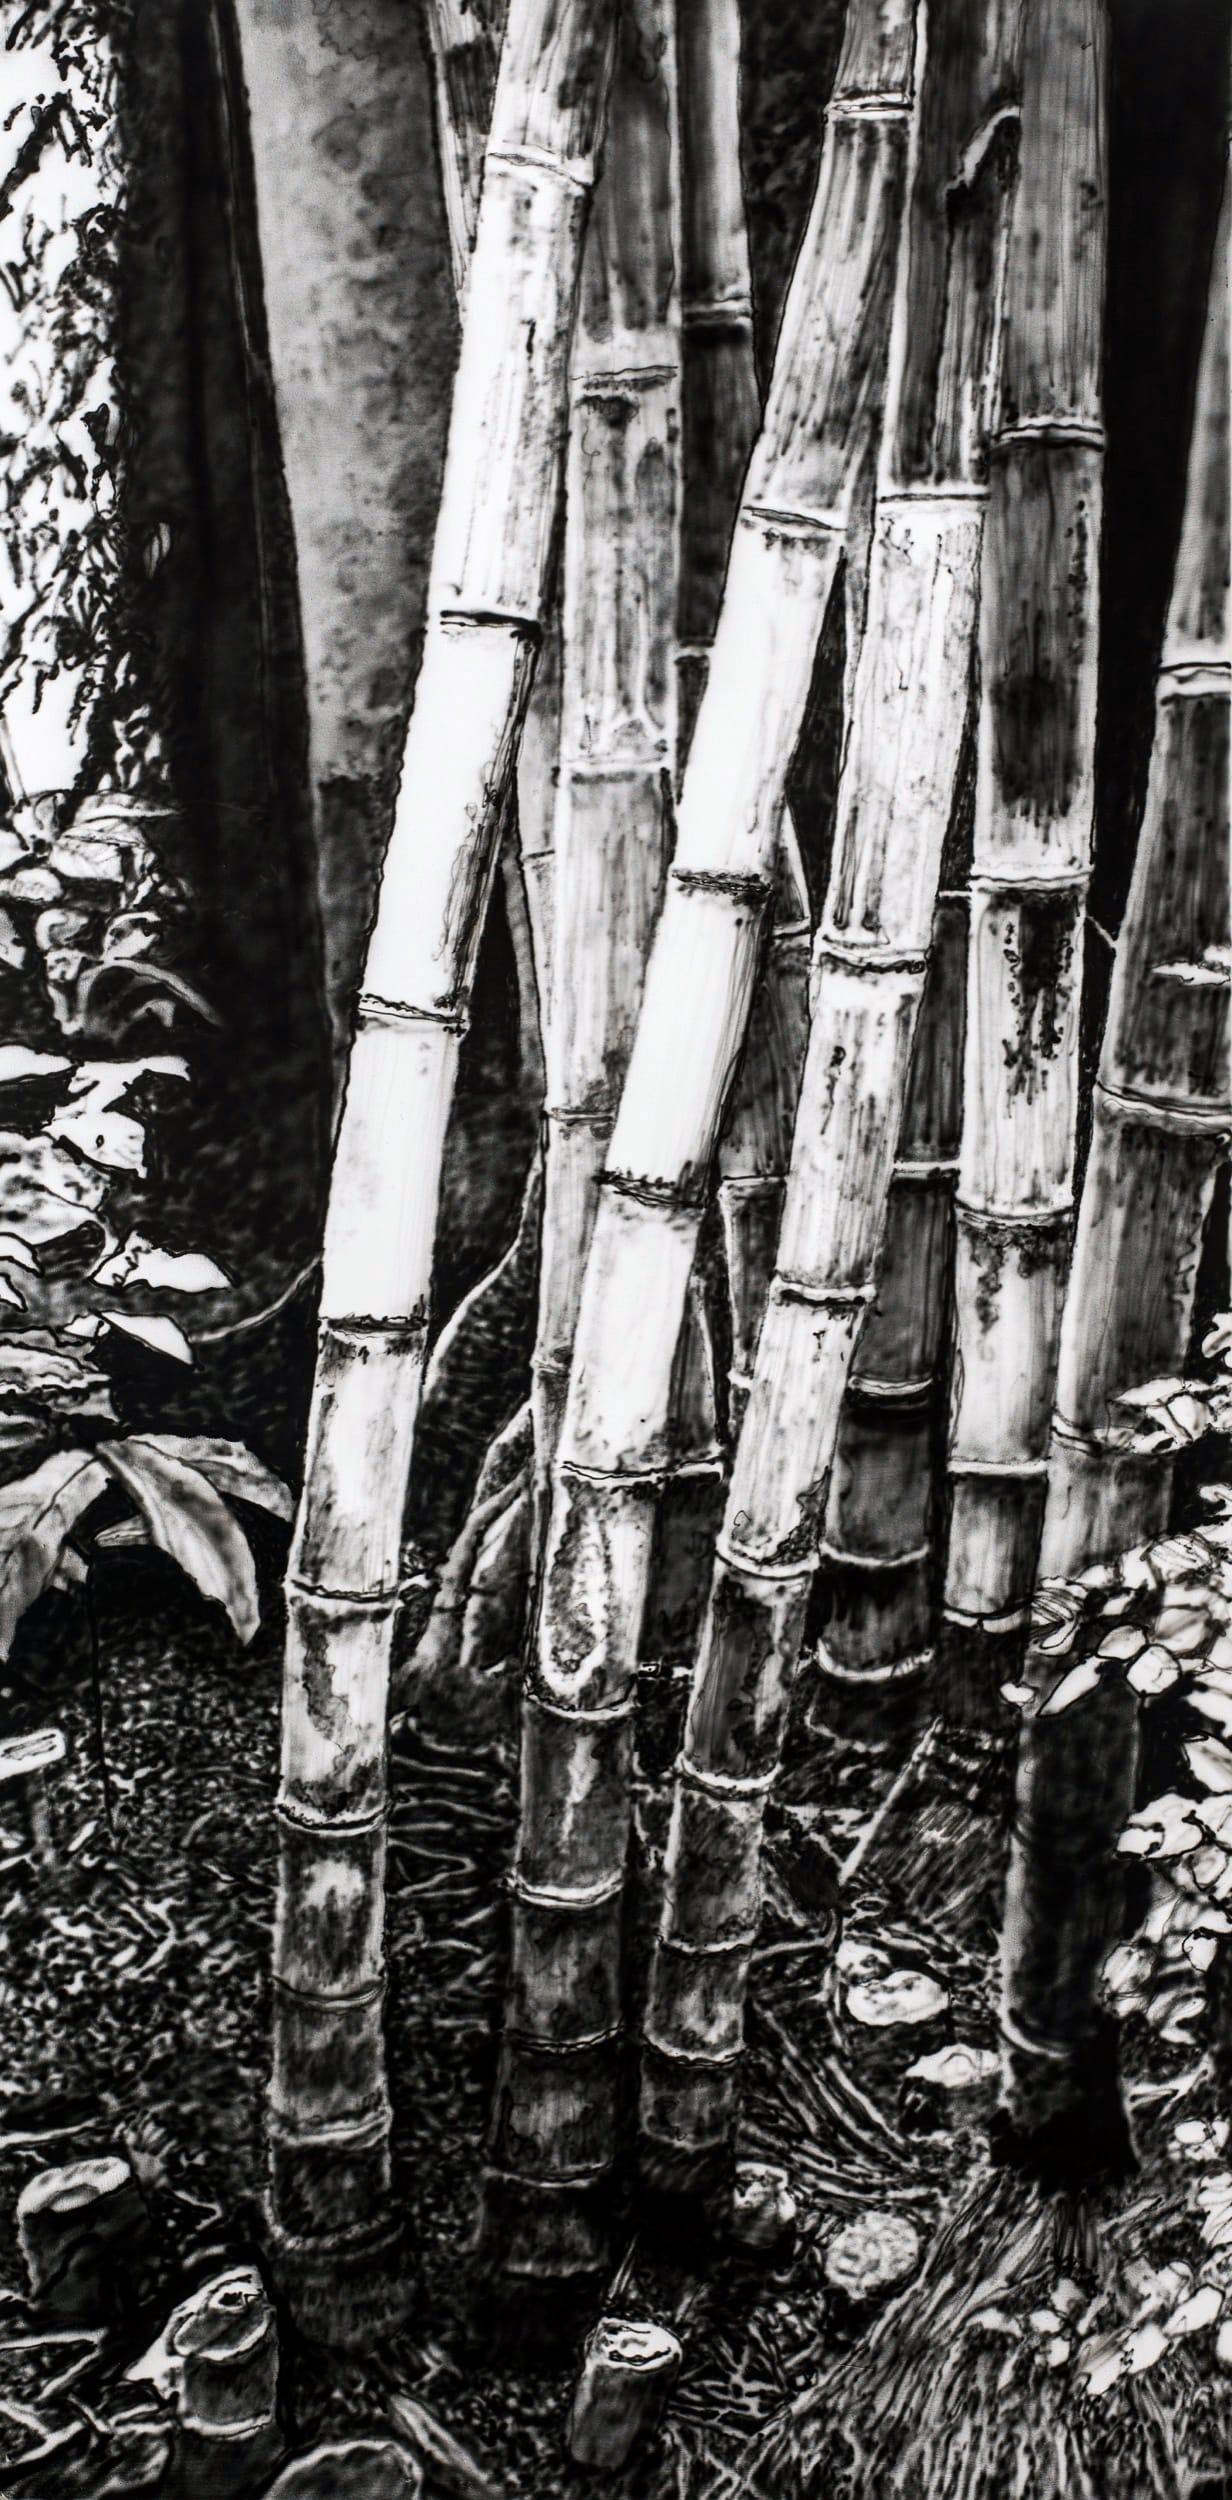 Bamboos. Oil on canvas, 80 x 160 cm, 2019